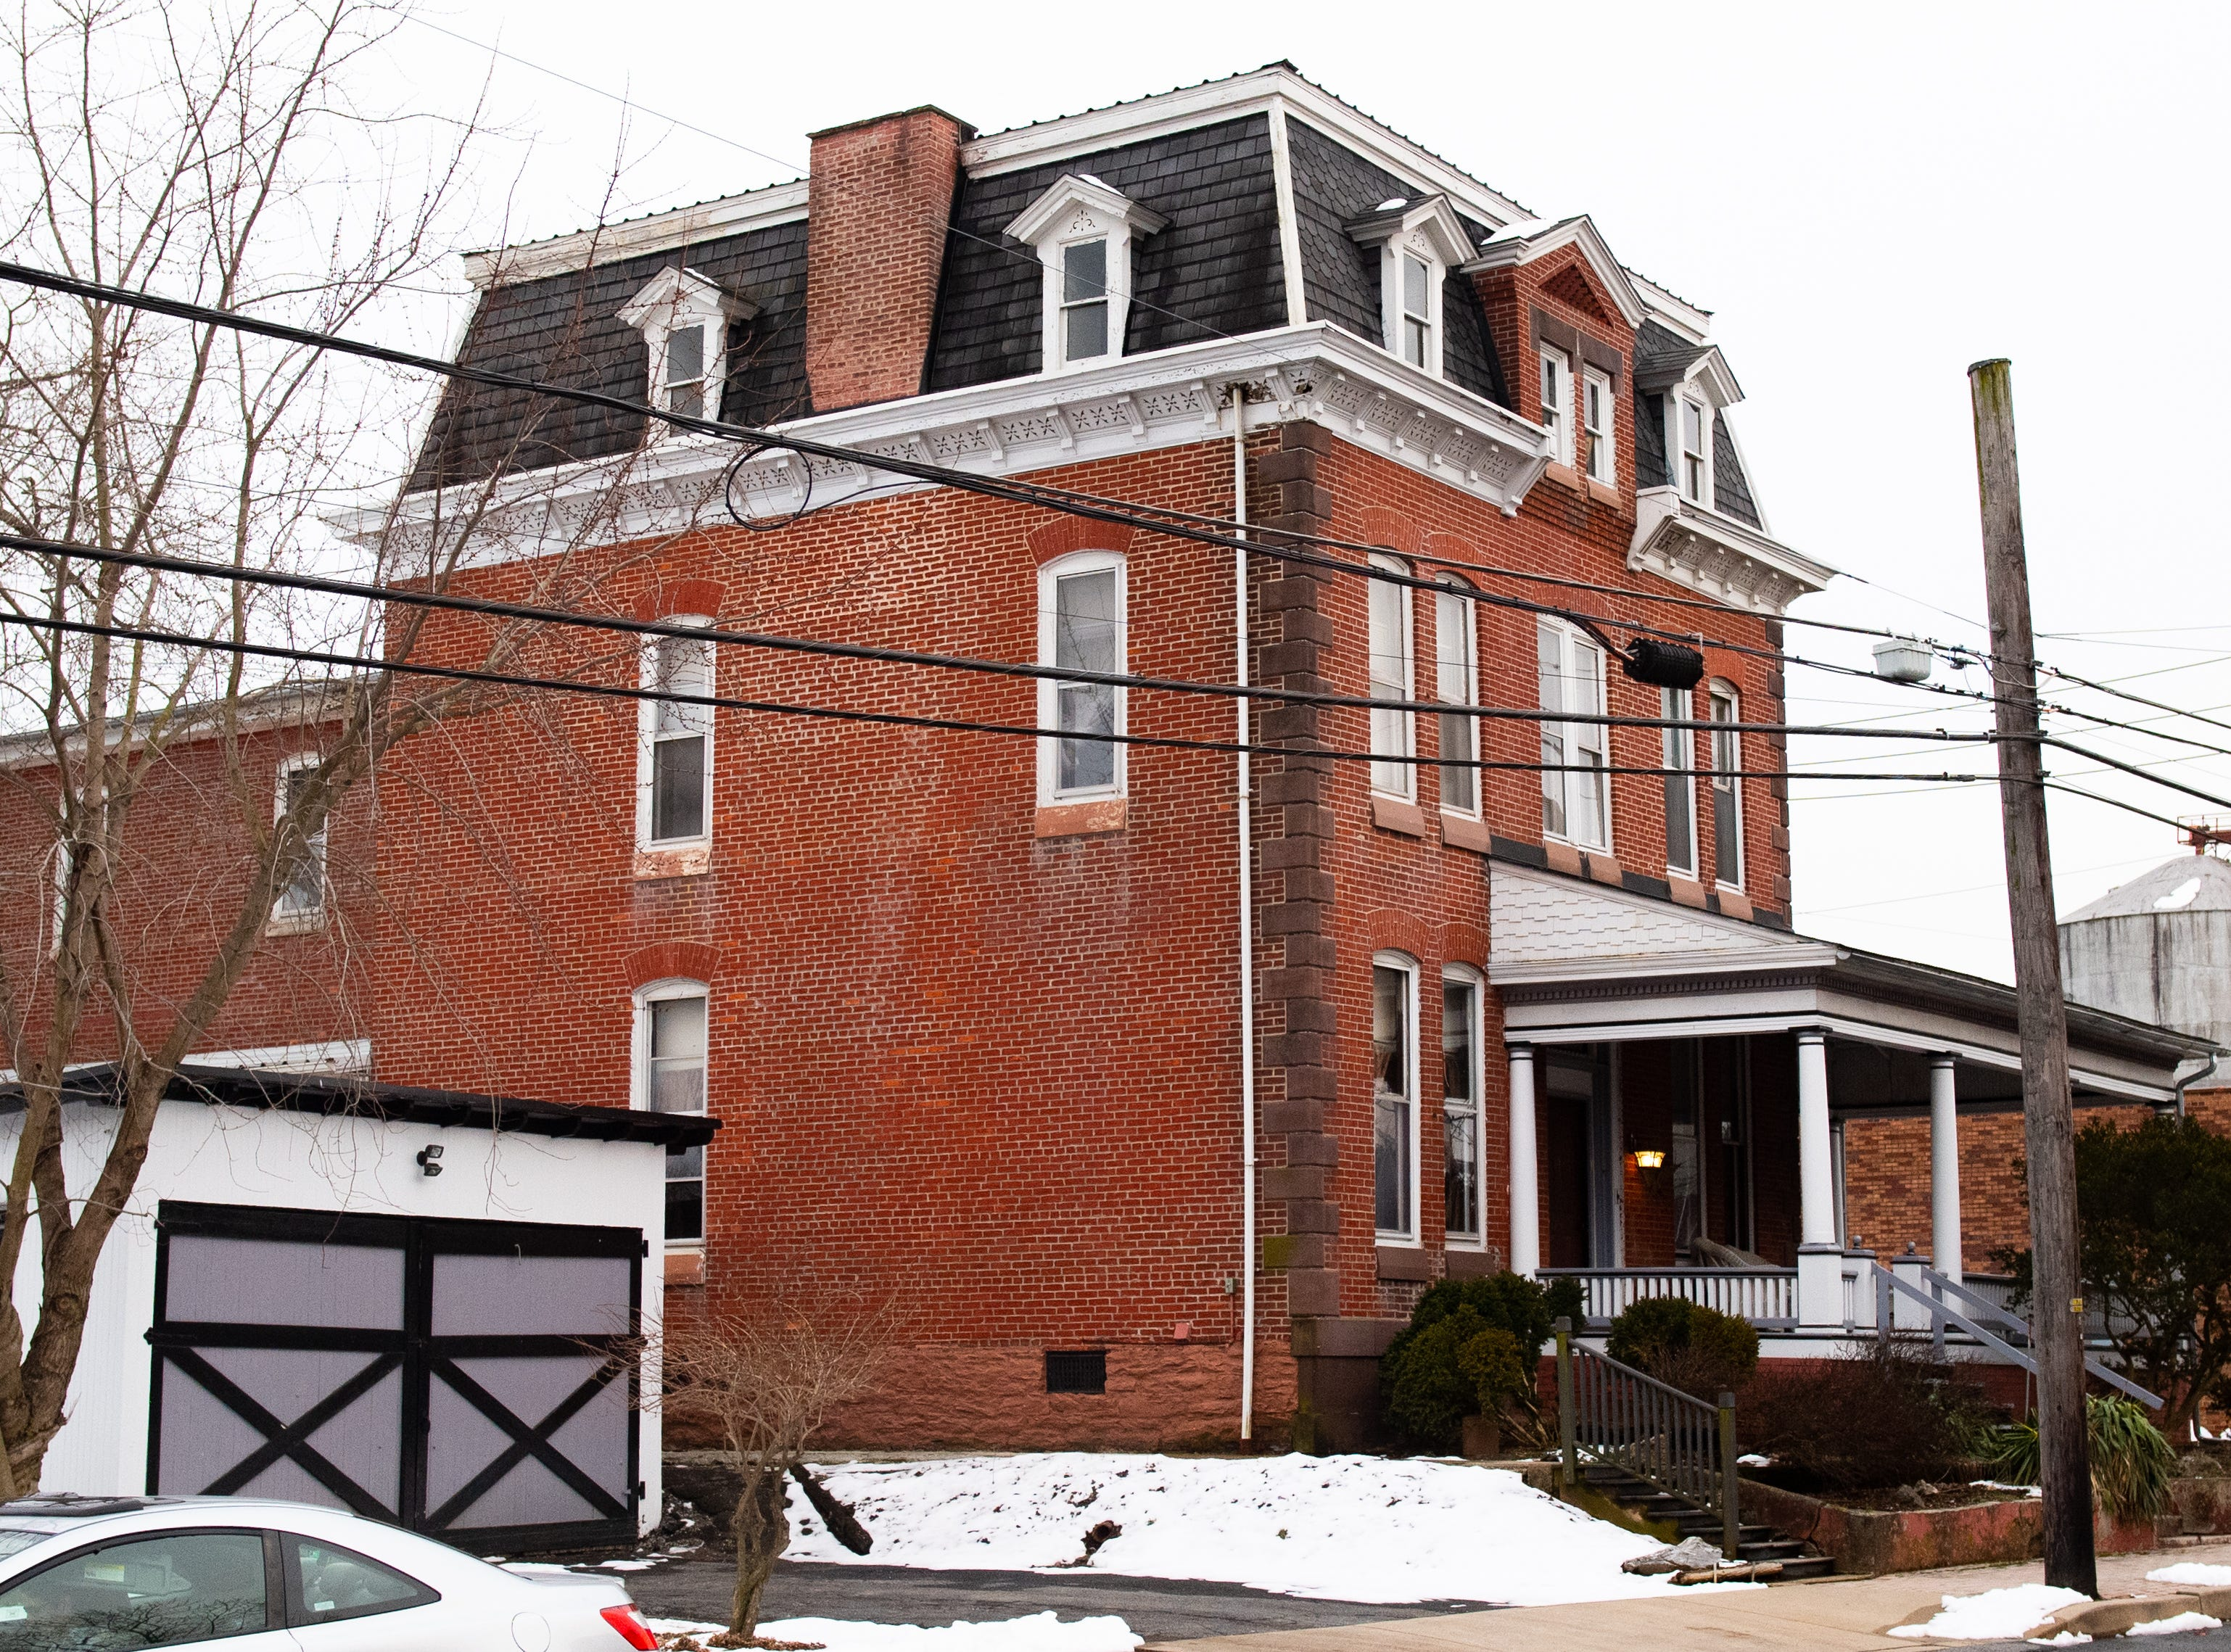 Across the street from Bube's Brewery is the Frank House, another hotel for visitors. The restored mansion has 2 suites with a full bath, living room and kitchen space, February 22, 2019.